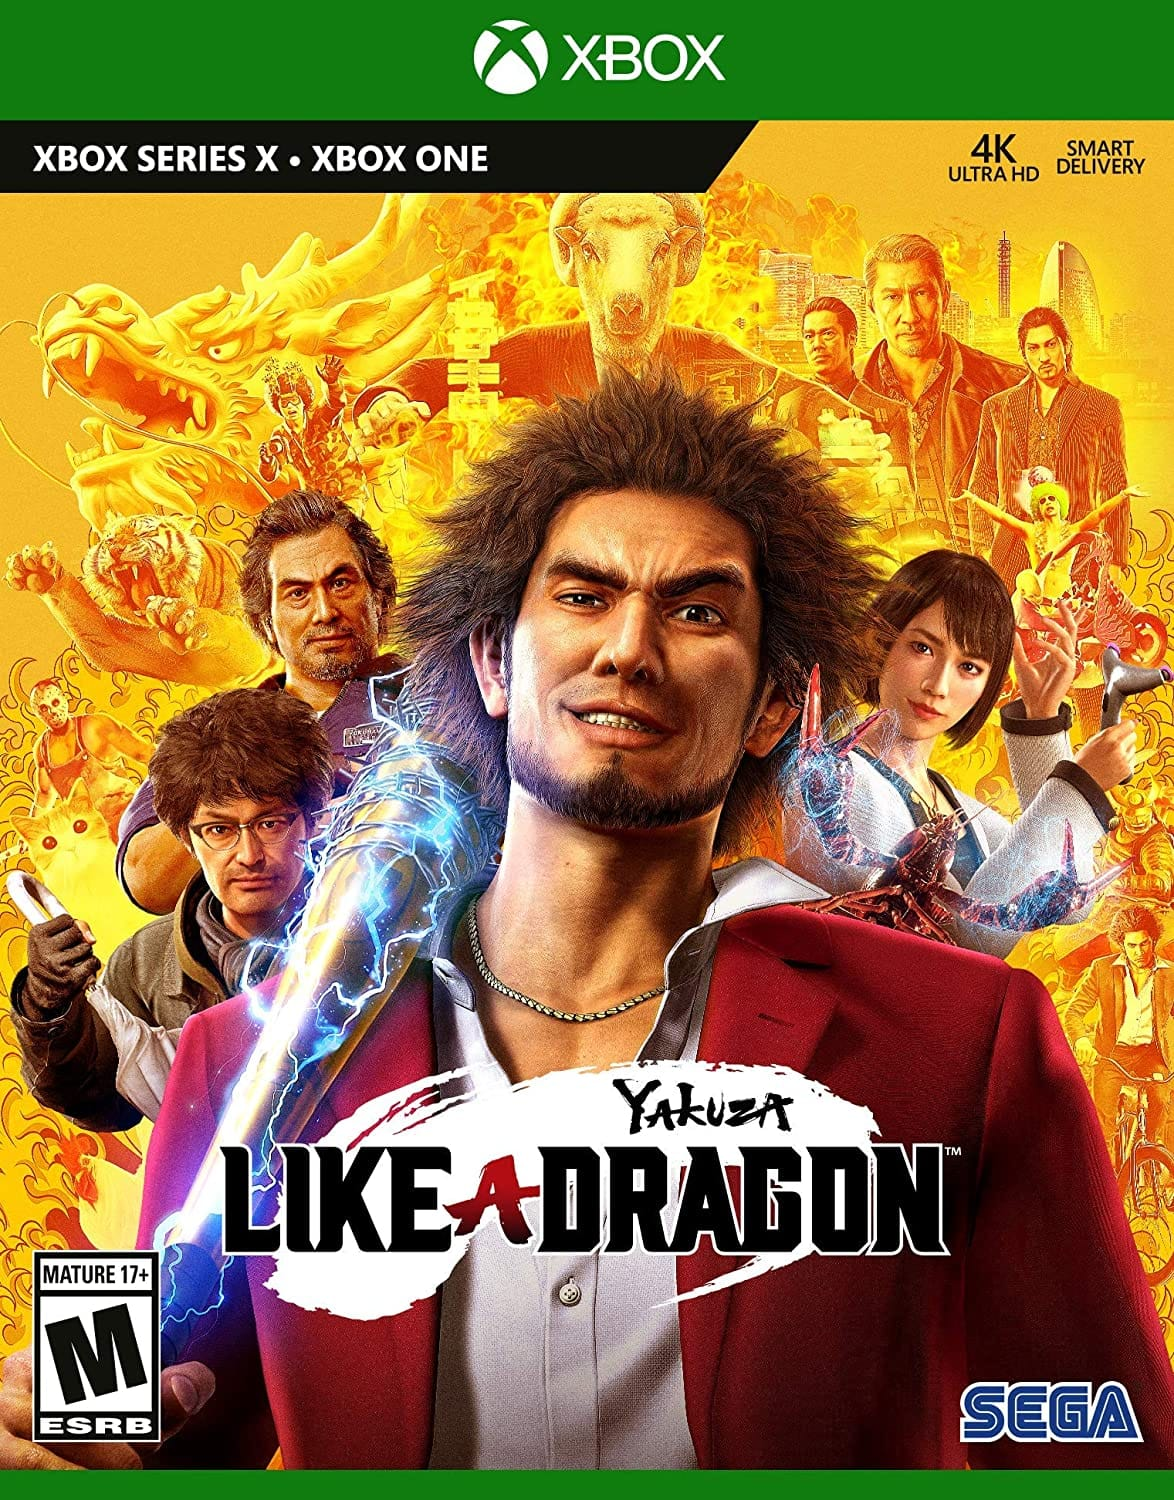 Yakuza: Like a Dragon Day Ichi Edition (Xbox One, Xbox Series X/S) $23.78